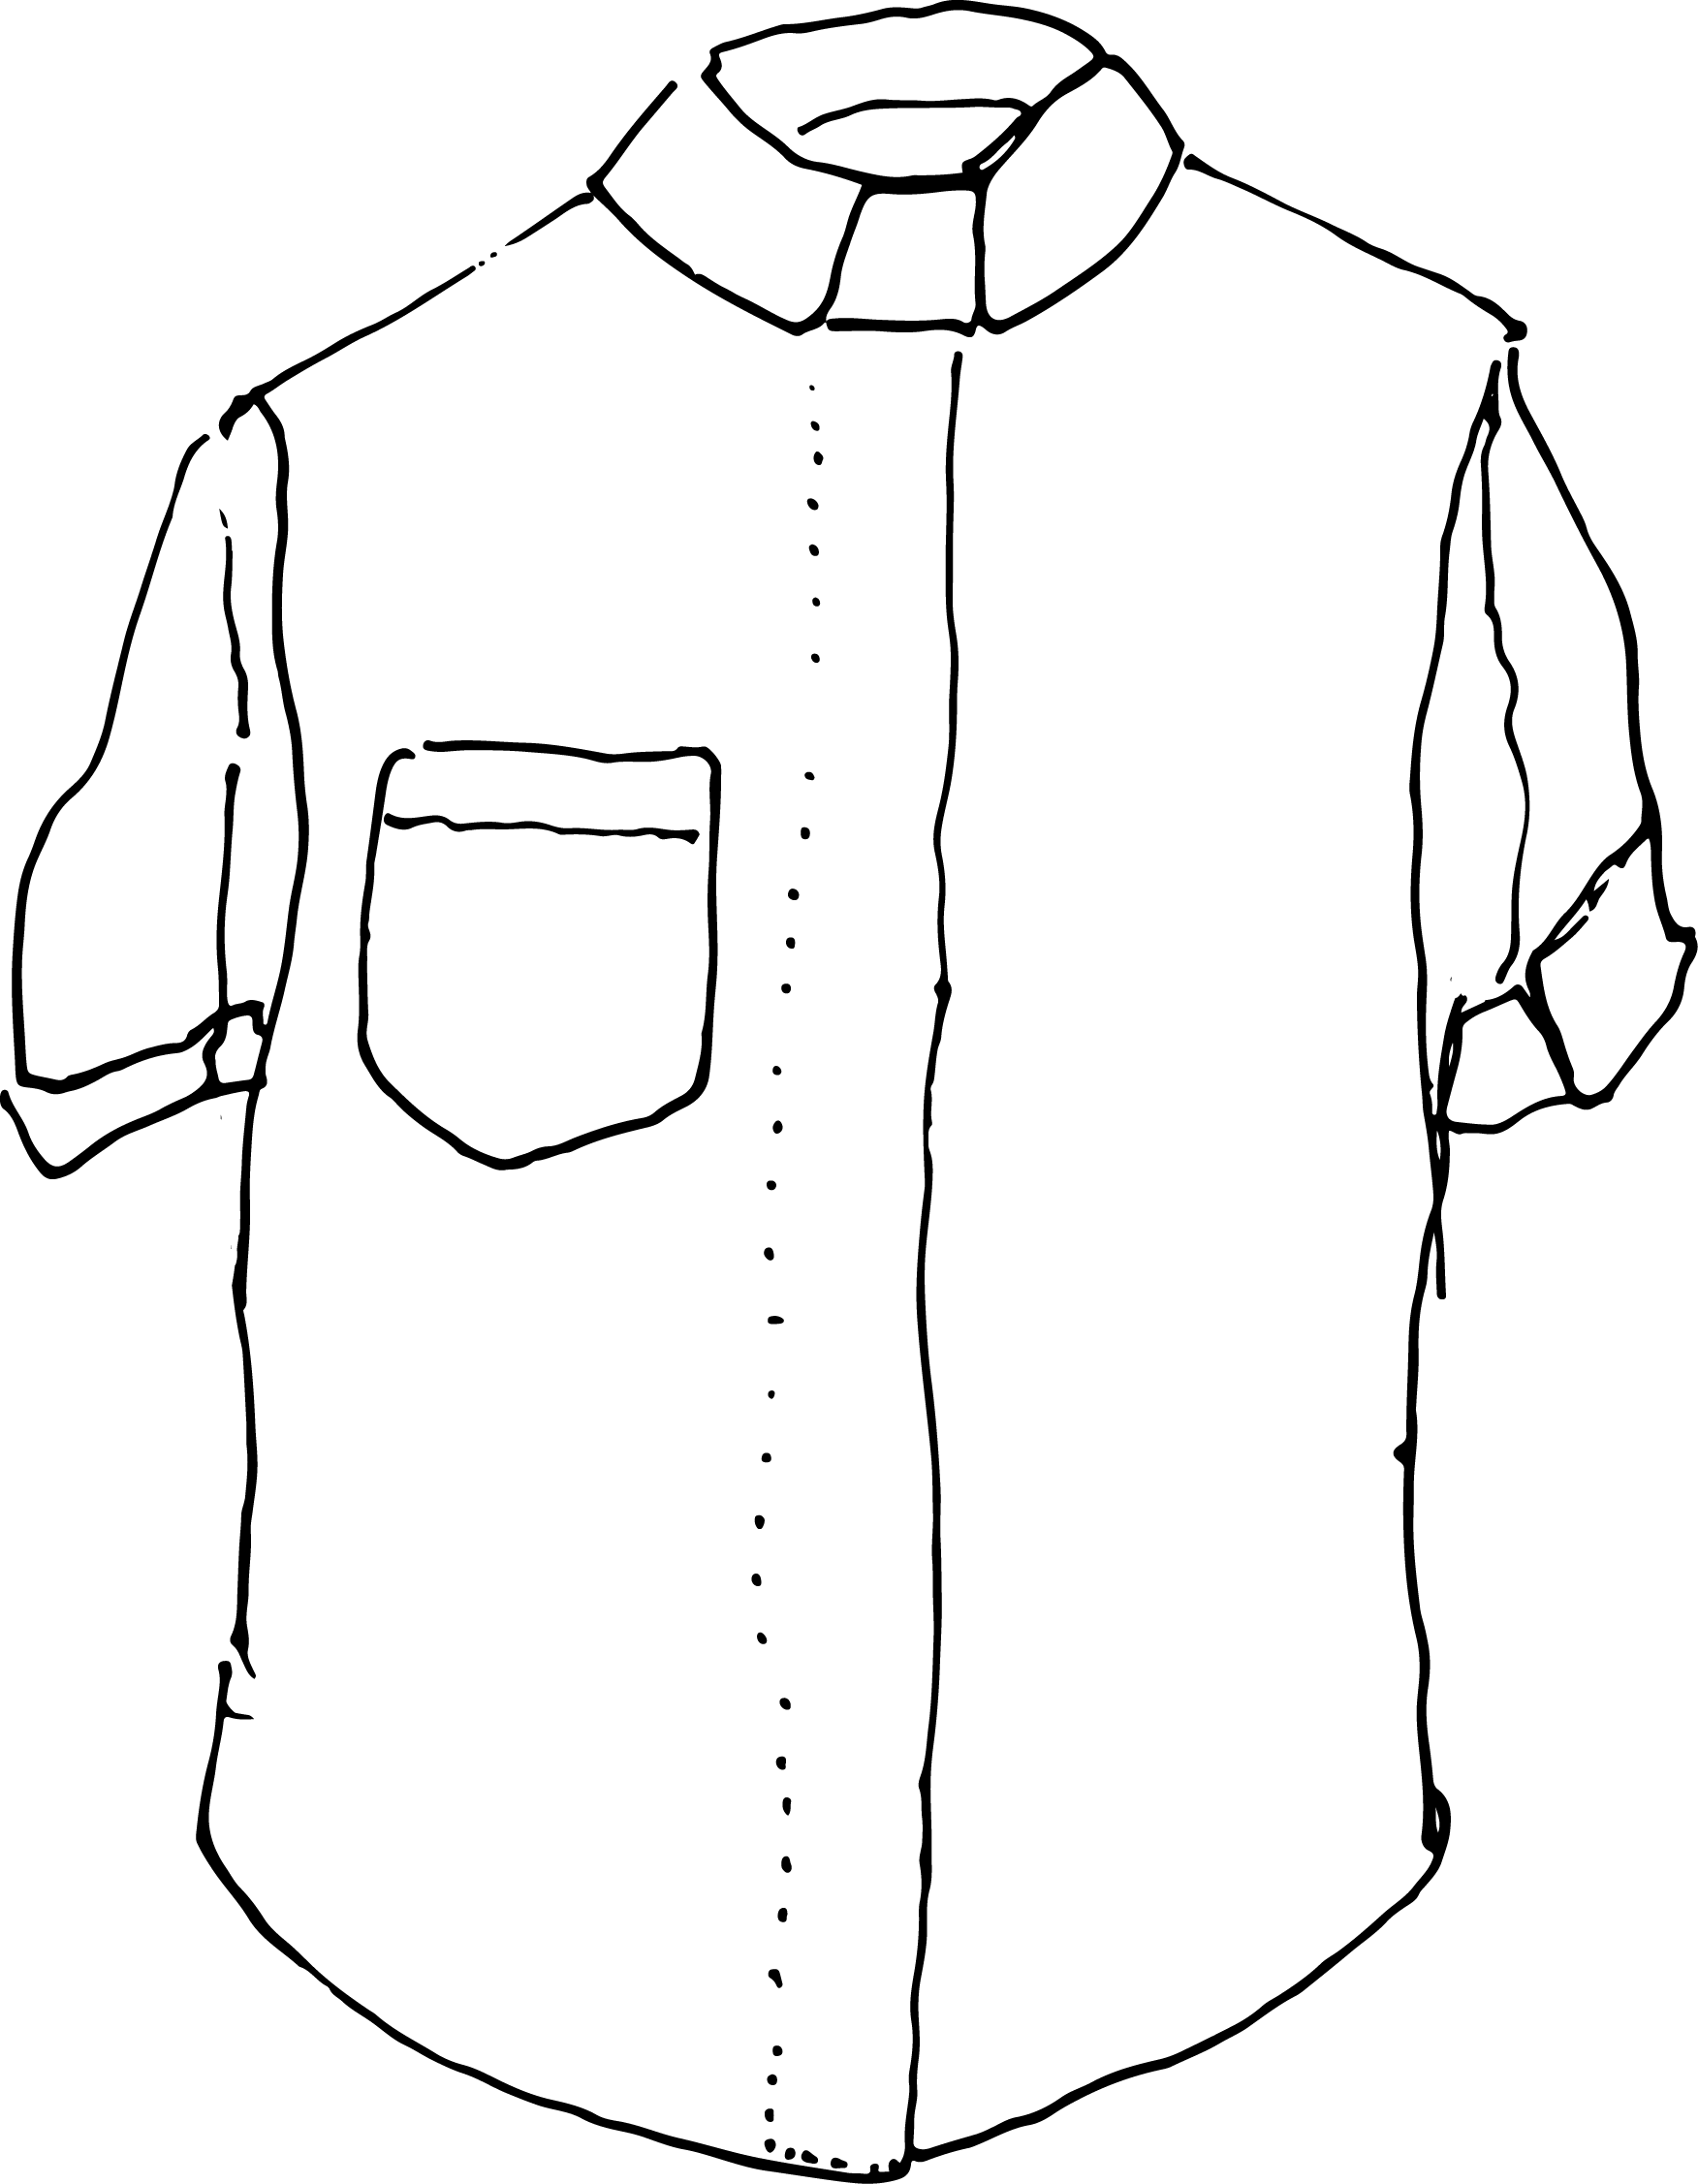 Short Sleeved Clerical Shirt - White Background.png